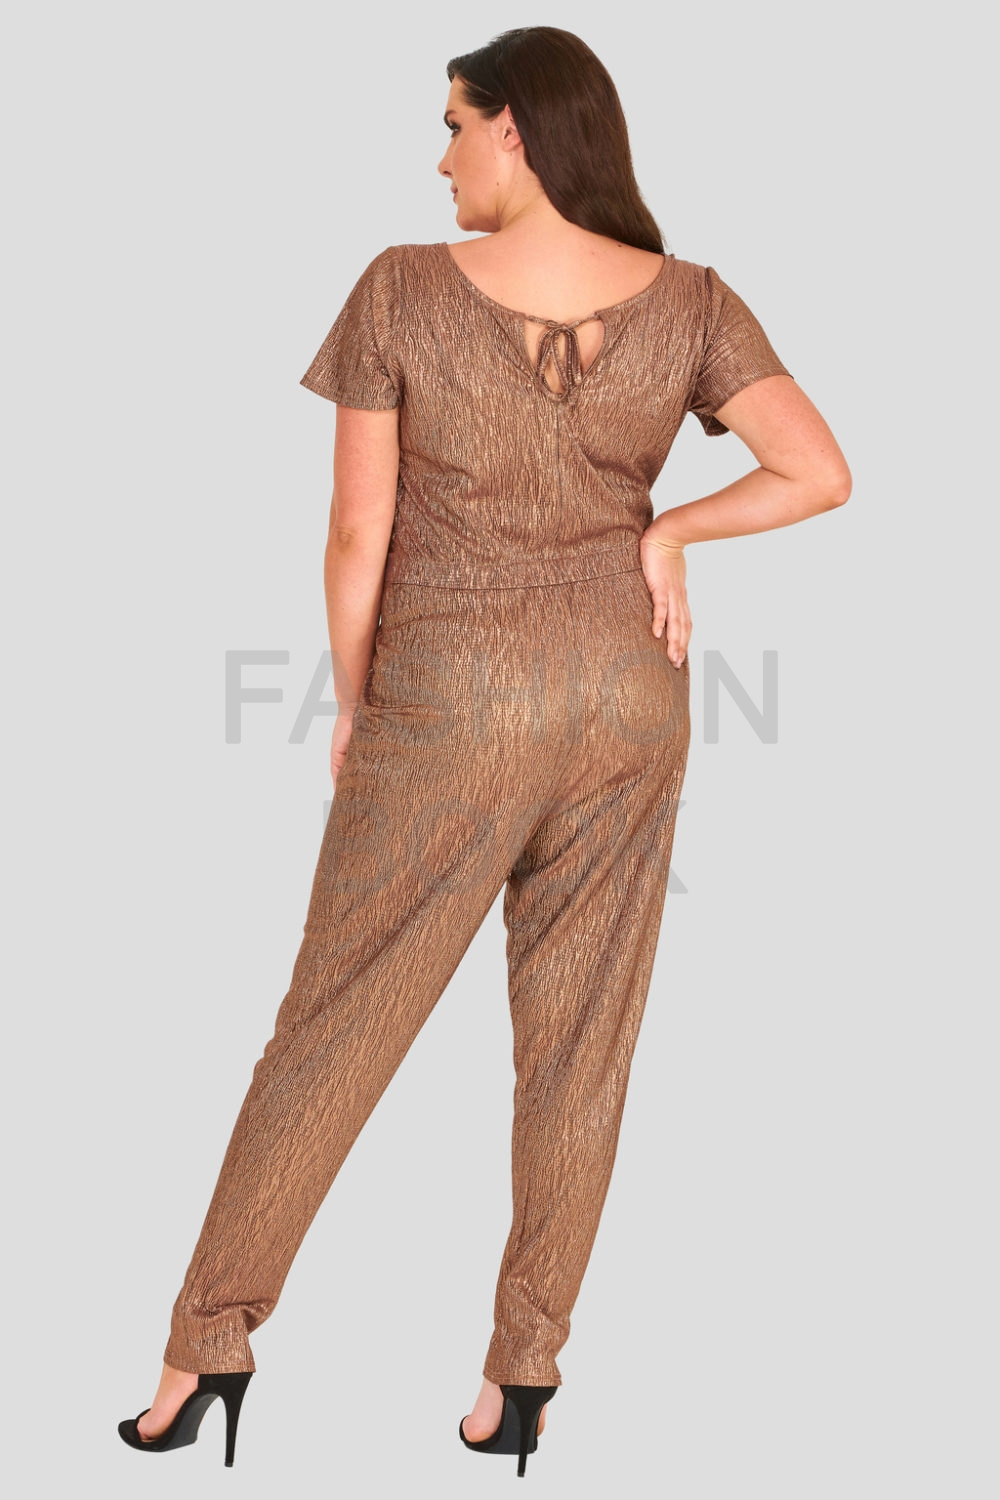 Metallic Foil Crinkle Stretch Jersey Jumpsuit Wholesale Clothing